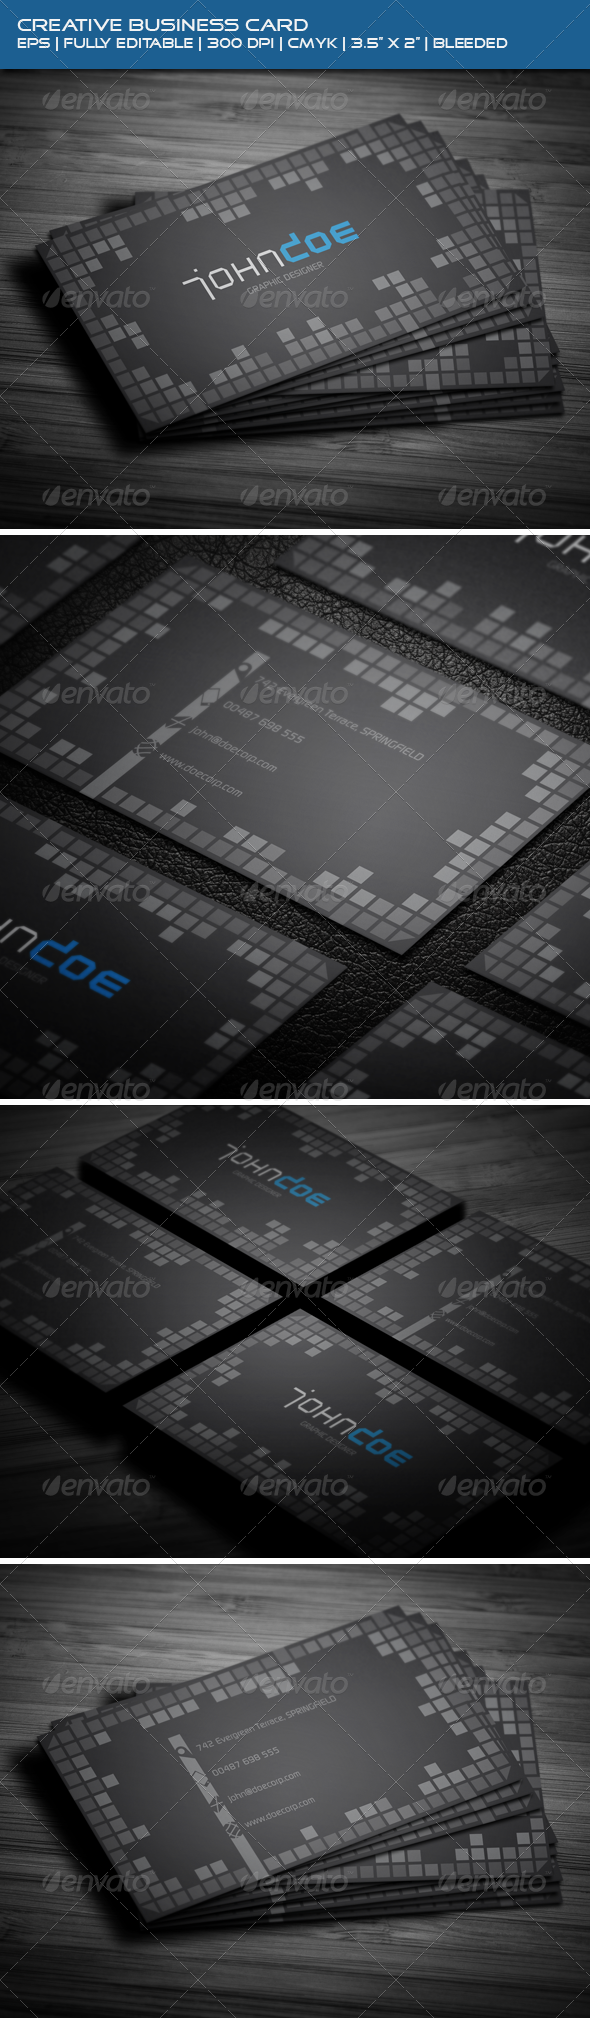 GraphicRiver Creative Business Card 3908011